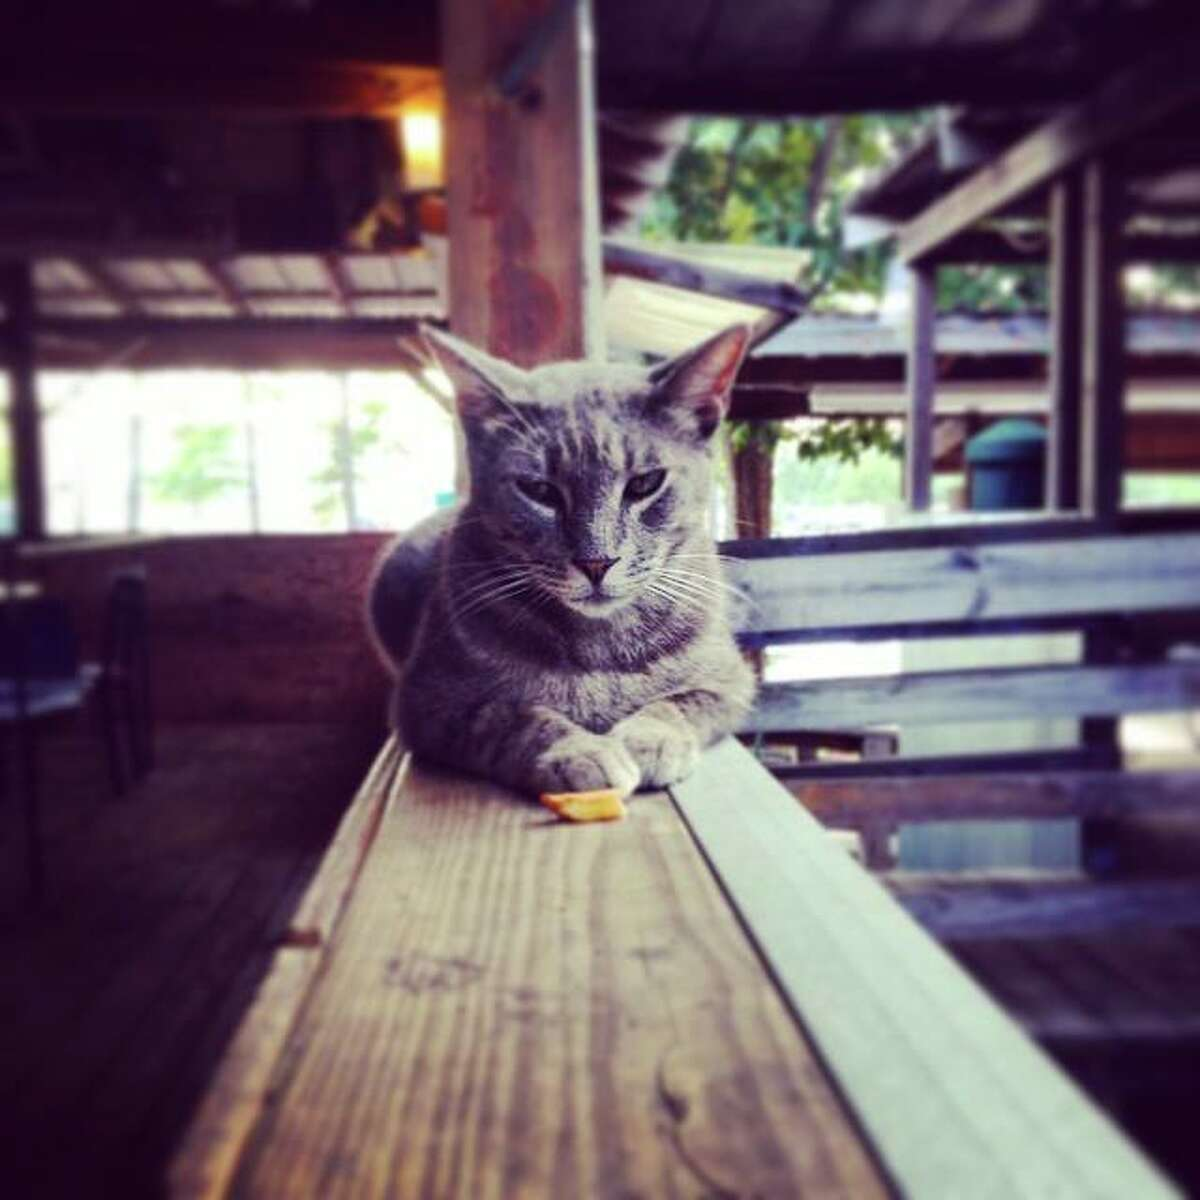 Chip, one of the feral cats that lives at Tin Roof BBQ in Atascocita.